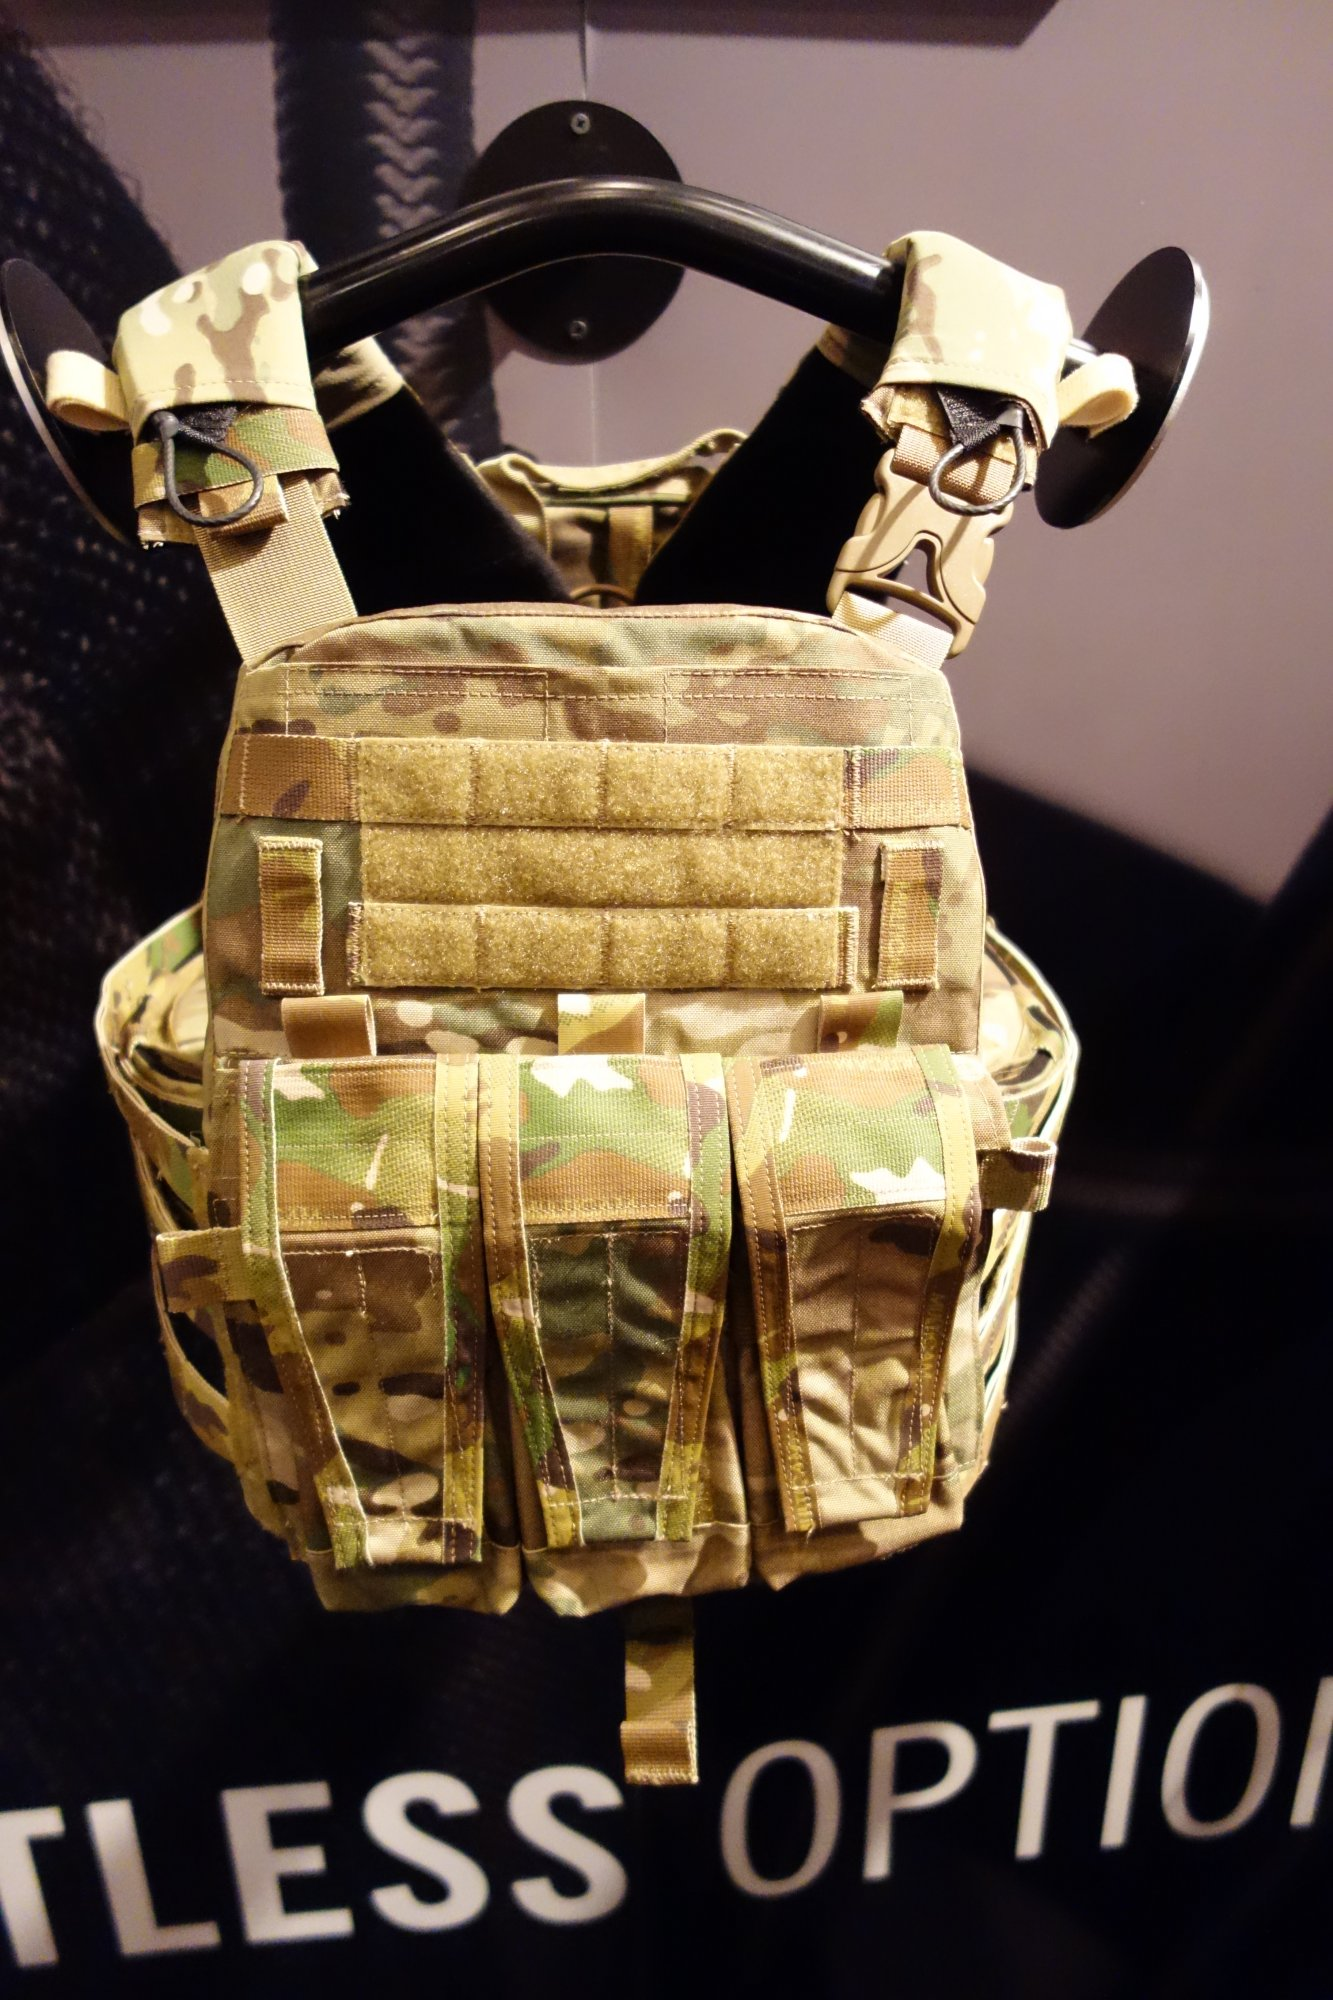 Crye Precision Adaptive Vest System AVS Assault Configuration Mission Configurable Modular Tactical Armor Plate Carrier SHOT Show 2013 David Crane DefenseReview.com DR 4 Crye Precision AVS AC (Adaptive Vest System Assault Configuration) Modular Tactical Armor Plate Carrier goes from Lo Pro/Lo Vis to Full Load Bearing Tactical Vest (Body Armor)